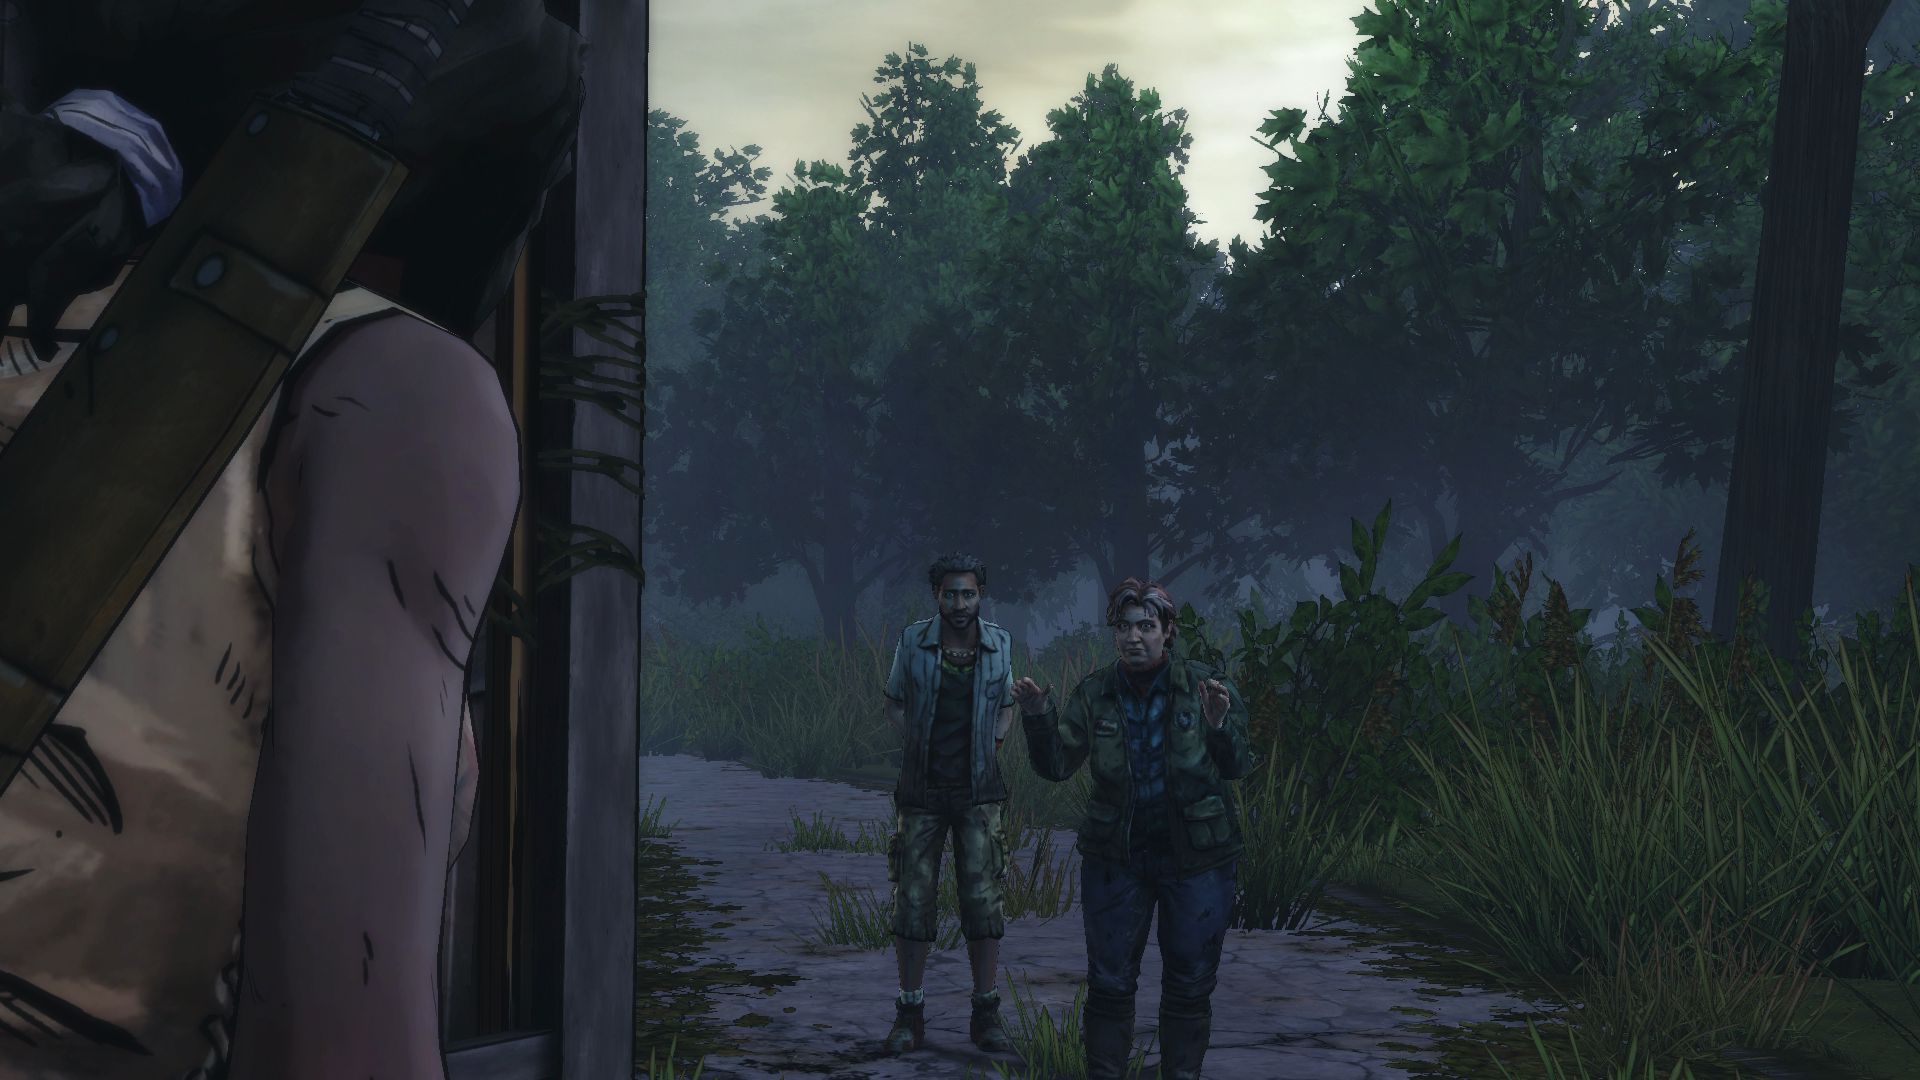 The Walking Dead: Michonne: Episode 3 - What We Deserve Xbox One